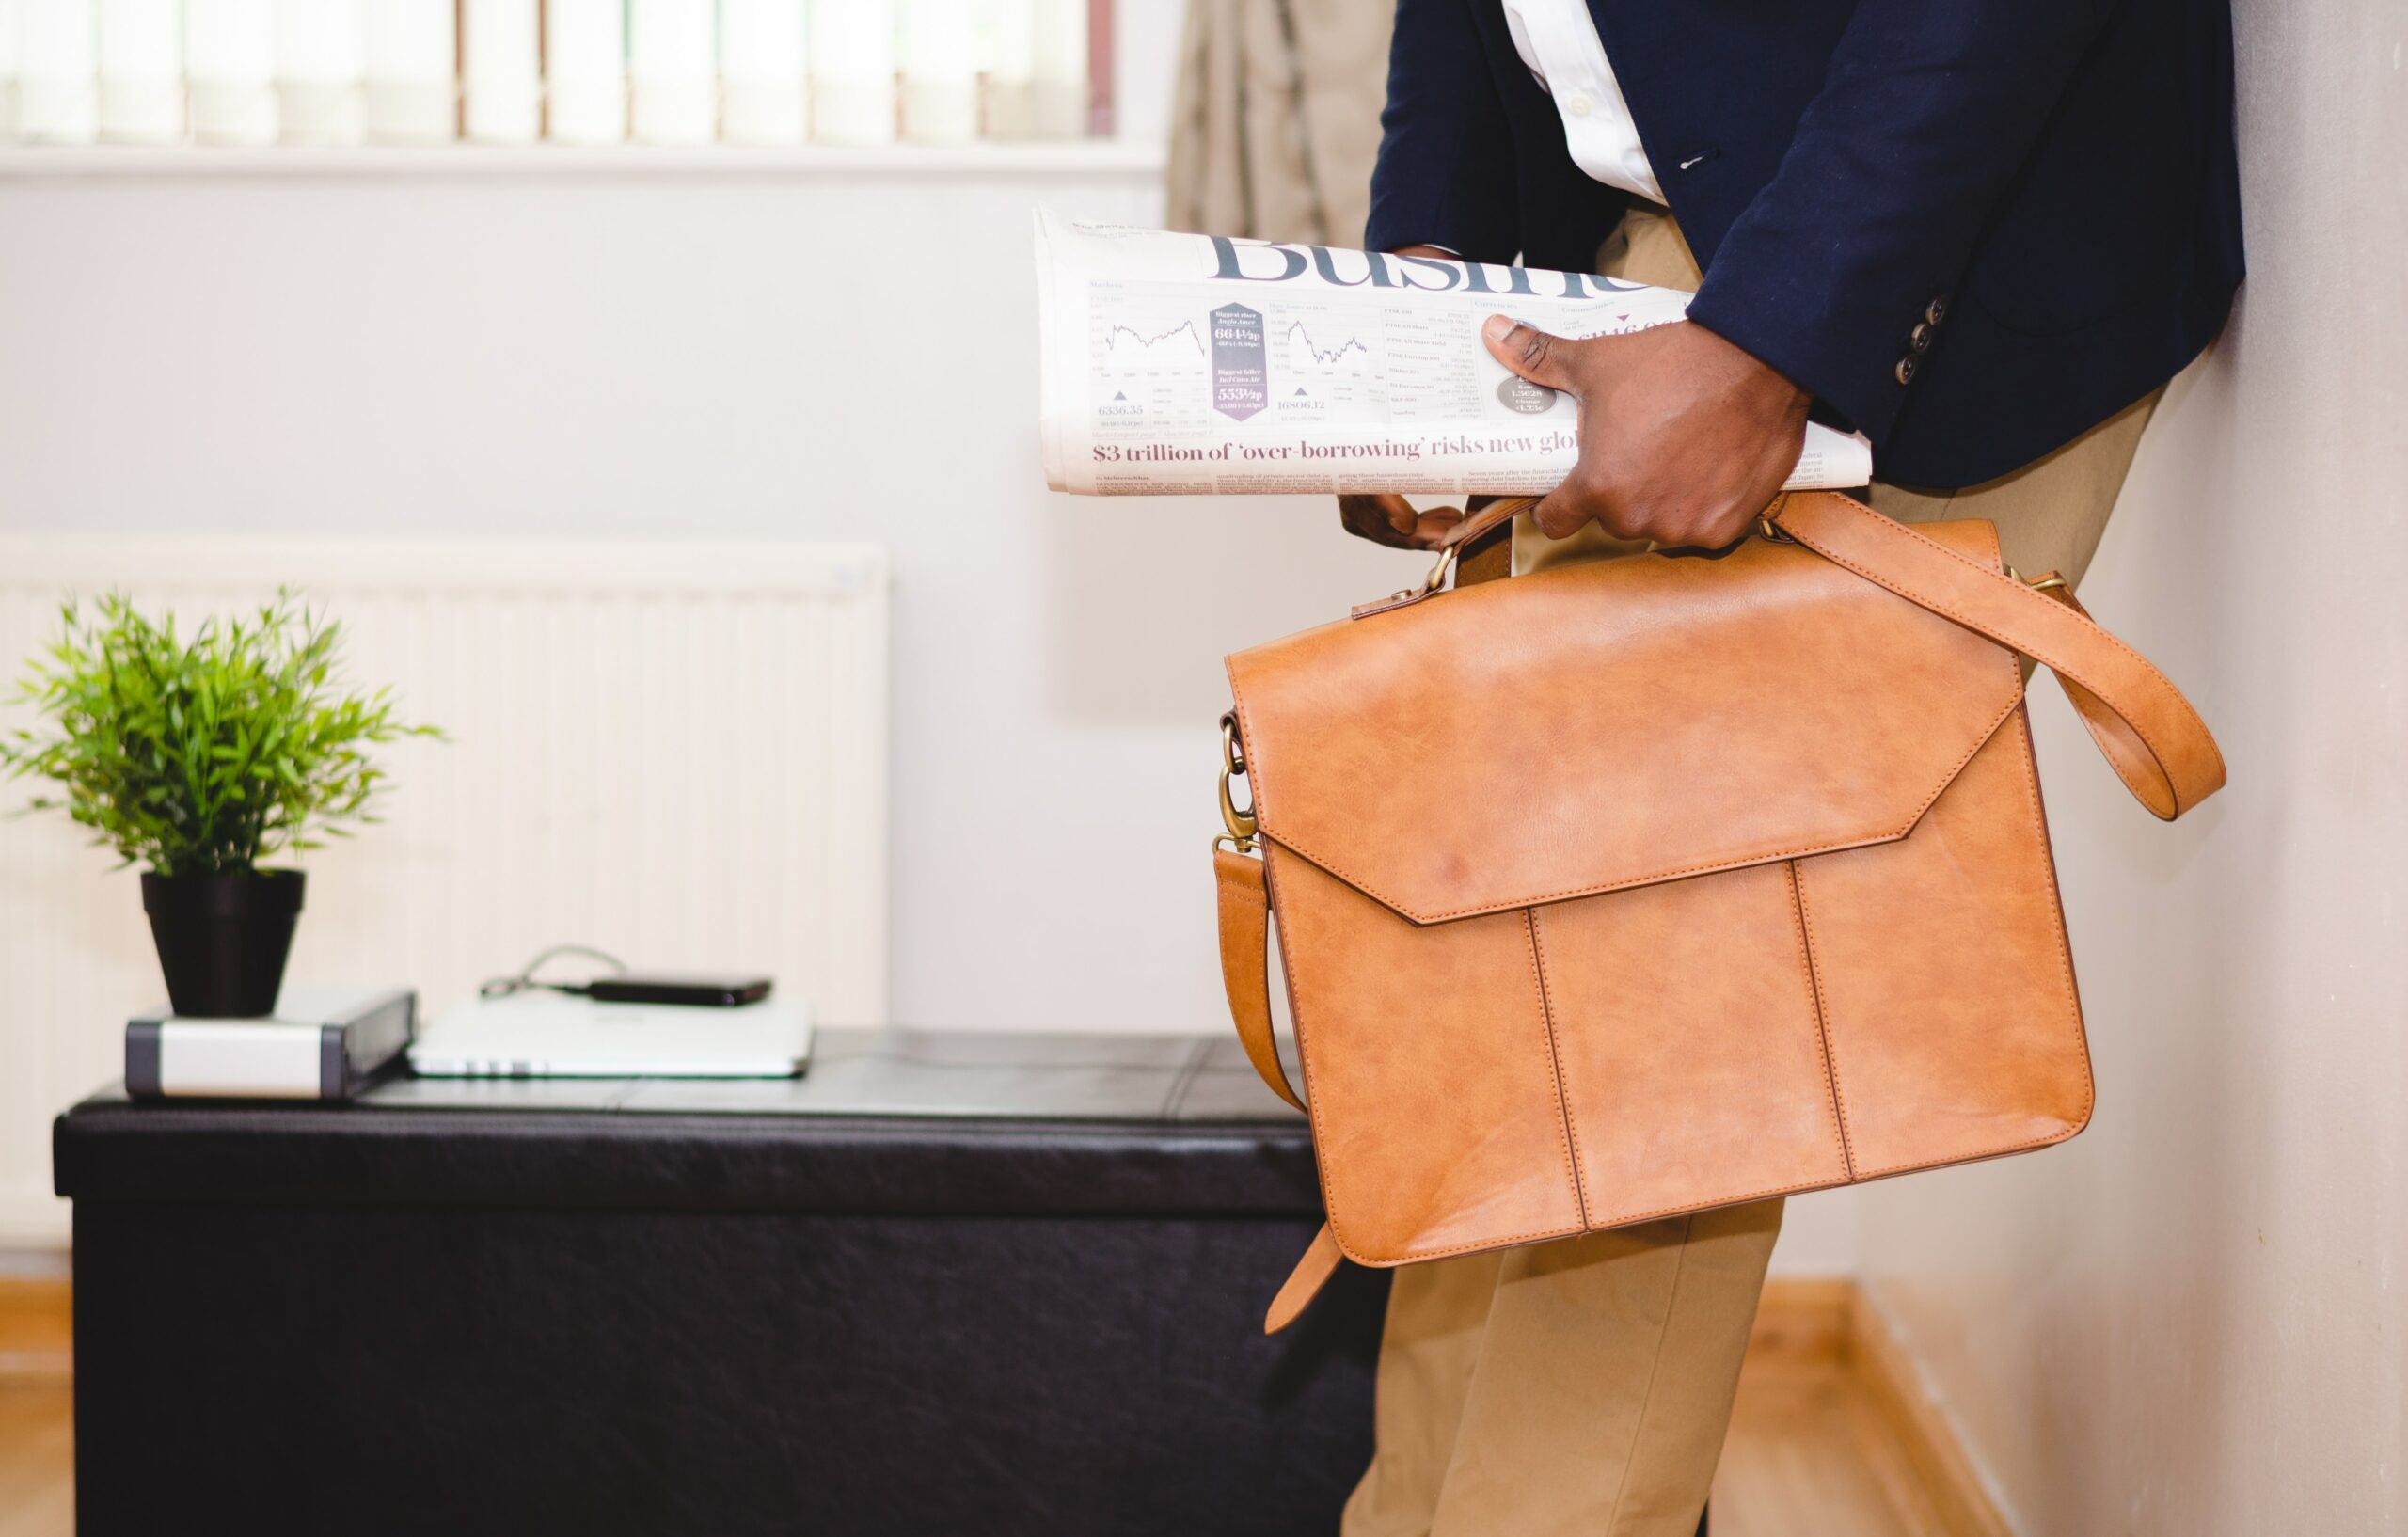 Image of a person holding a briefcase